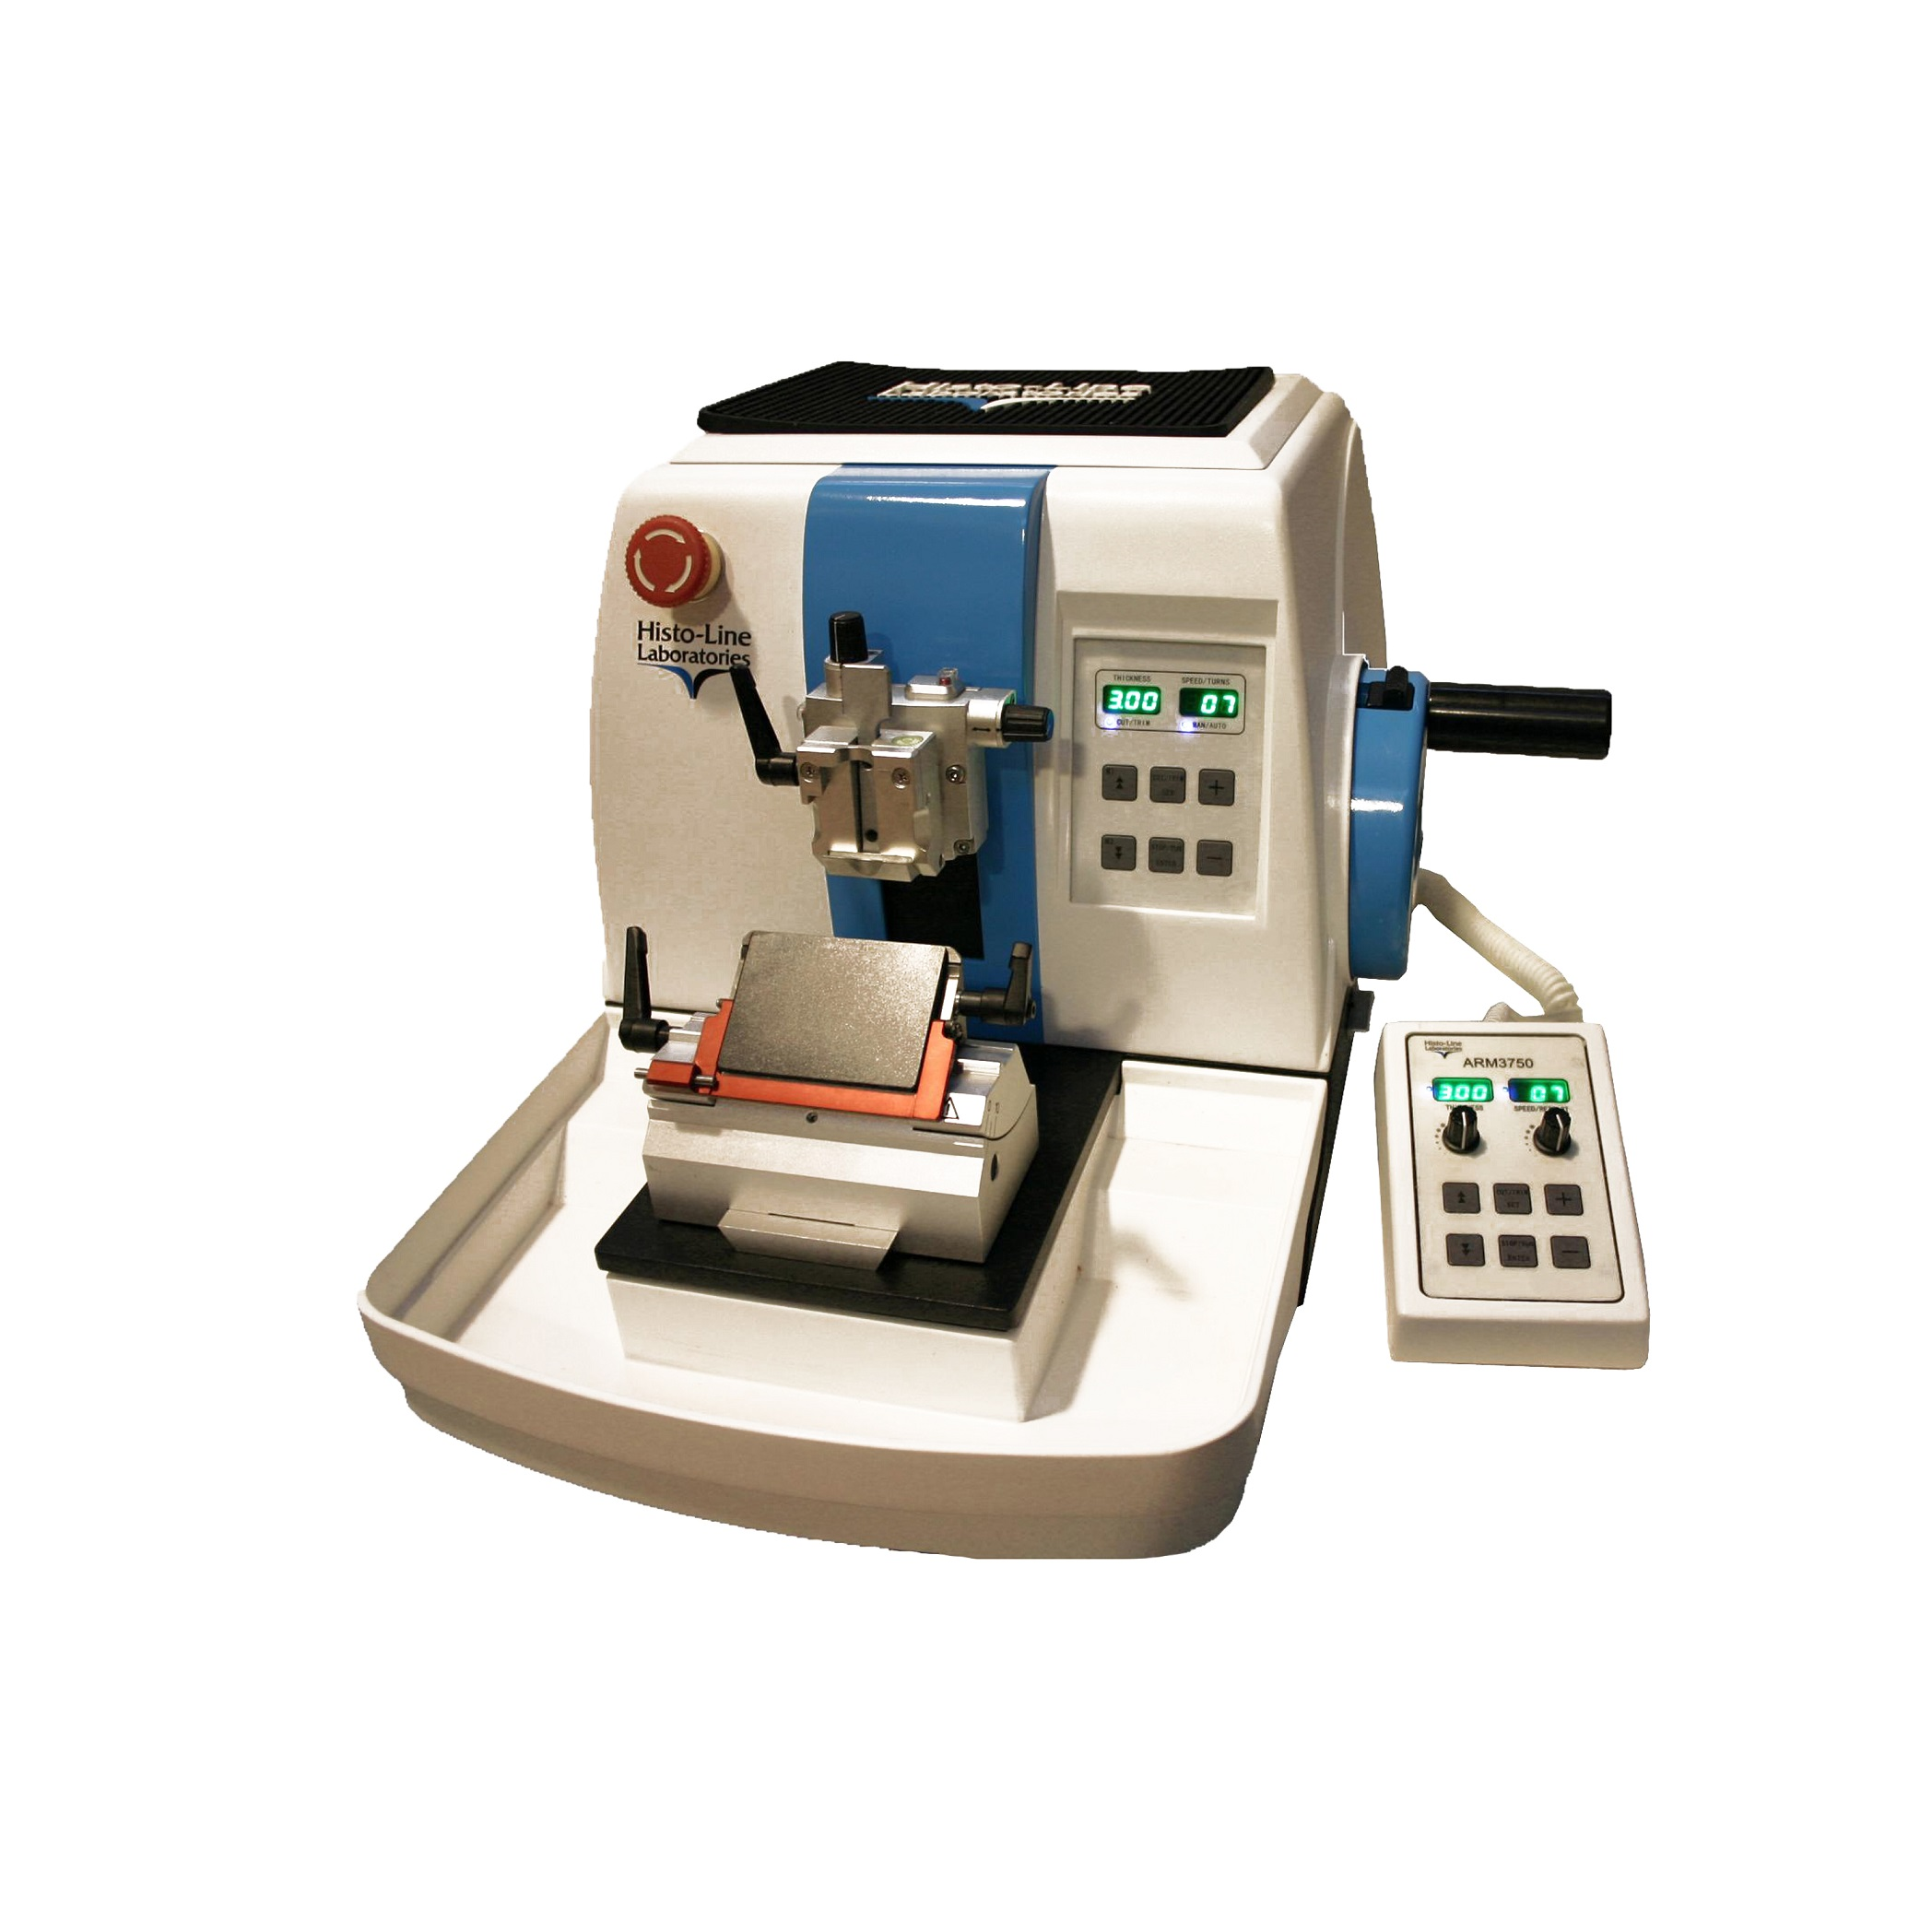 Fully Motorized Rotary microtome programmable